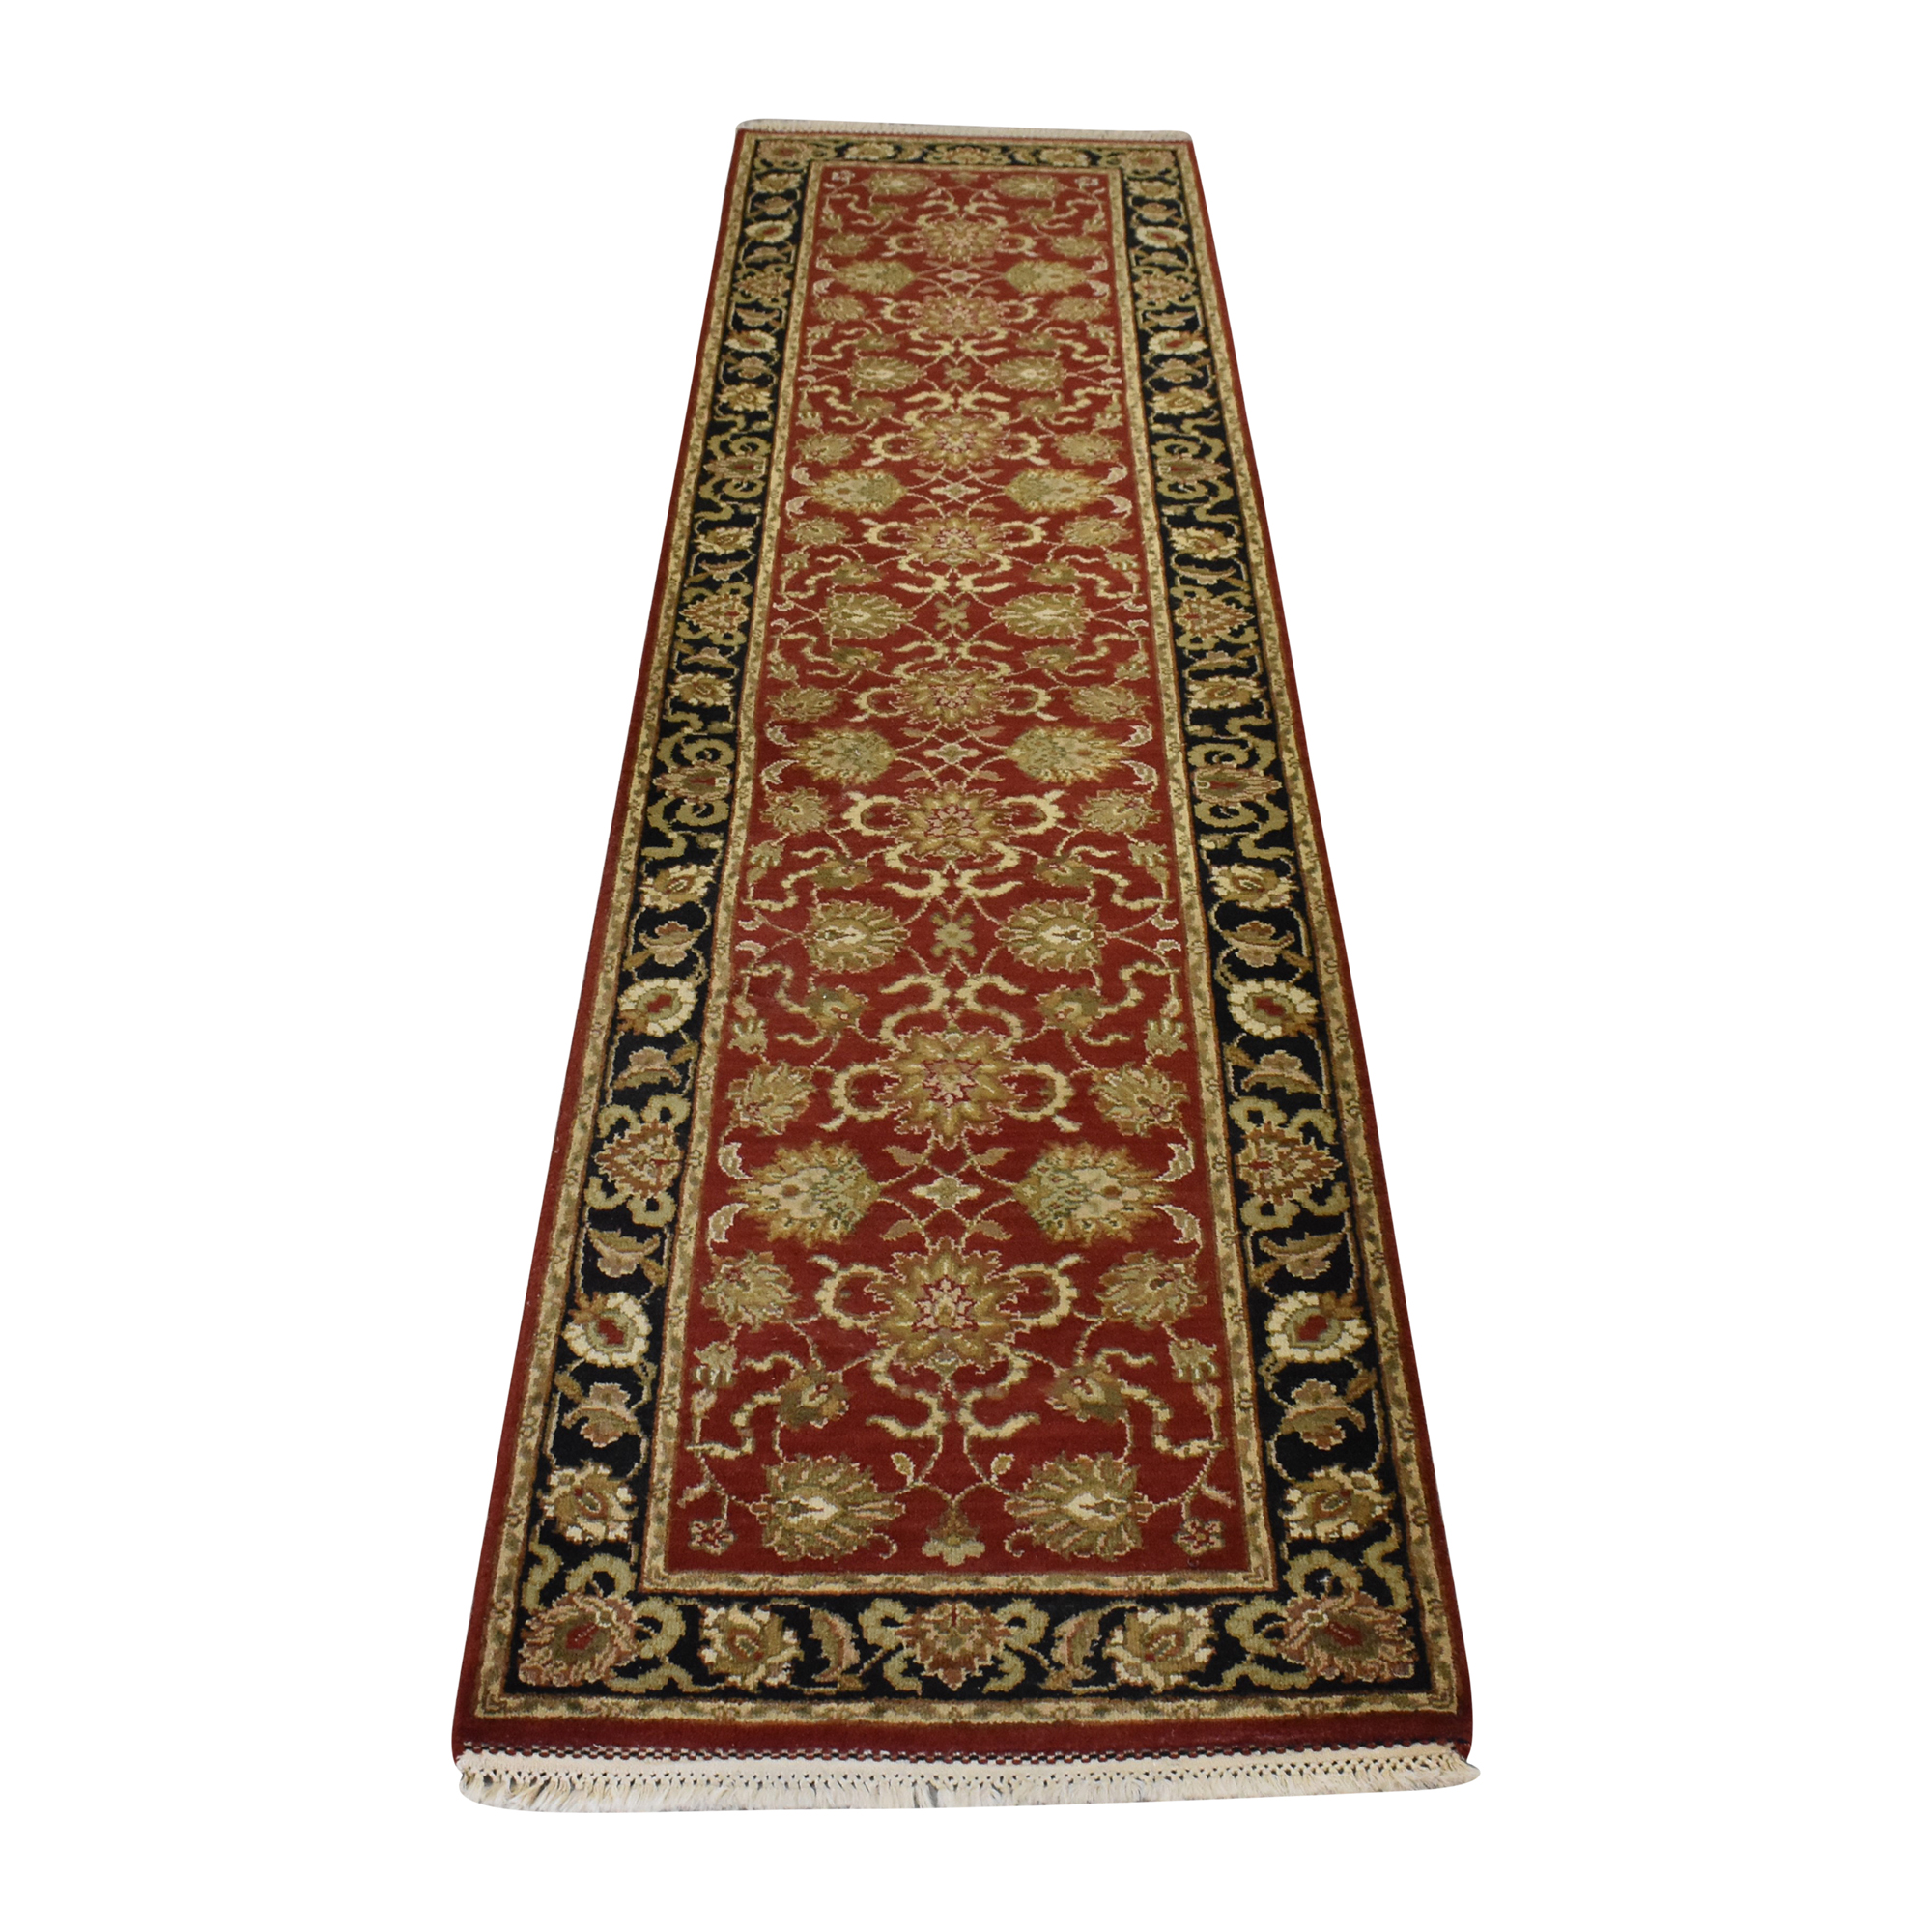 Home Decorators Collection Home Decorators Collection Santana Runner second hand